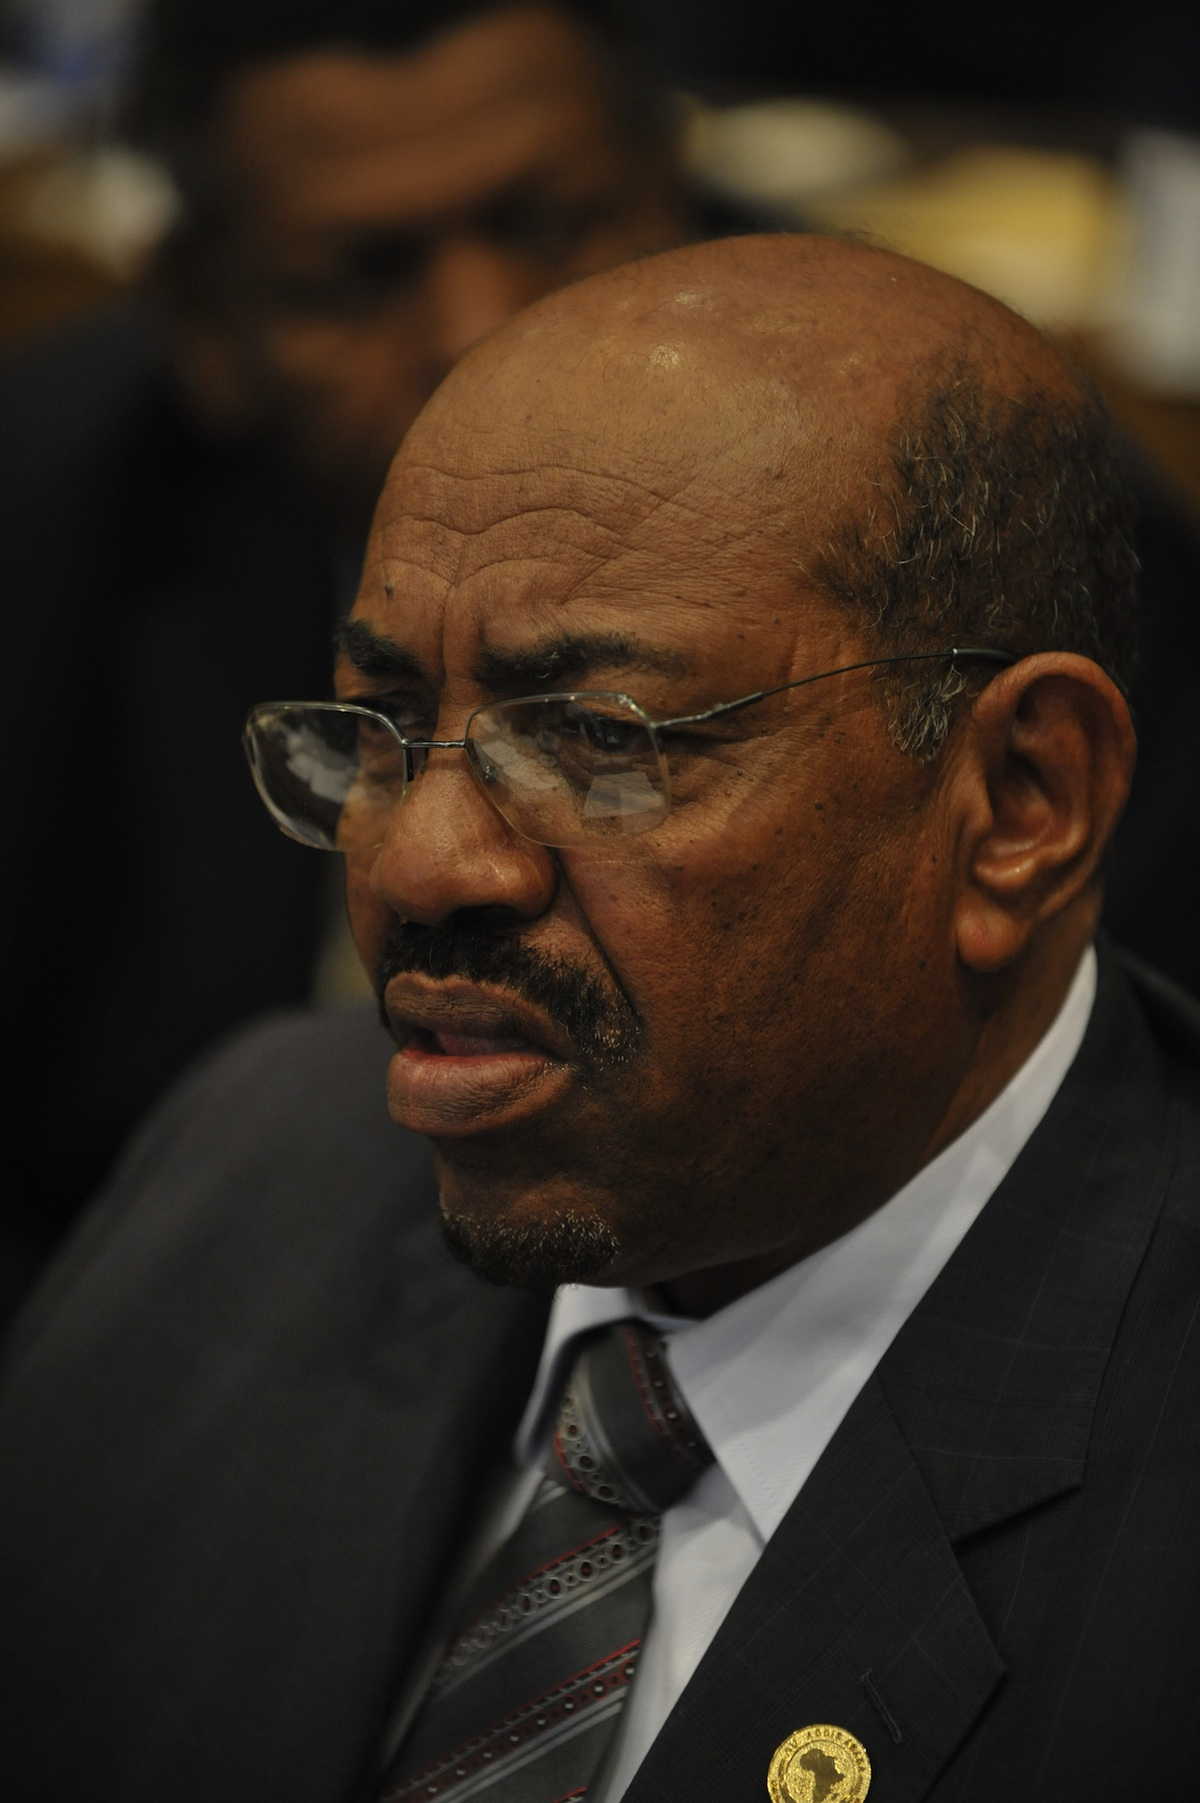 """Click photo to download. Caption: In time for this year's Holocaust Remembrance Day (Yom HaShoah), energetically chasing down modern war criminals such as Sudanese President Omar al-Bashir (pictured) is part of saying """"never again"""" and meaning it, writes JNS.org columnist Ben Cohen. Credit: U.S. Navy.              c-font-family:auto; mso-font-pitch:variable; mso-font-signature:3 0 0 0 1 0;} @font-face {font-family:""""MS 明朝""""; mso-font-charset:78; mso-generic-font-family:auto; mso-font-pitch:variable; mso-font-signature:1 134676480 16 0 131072 0;} @font-face {font-family:""""Cambria Math""""; panose-1:2 4 5 3 5 4 6 3 2 4; mso-font-charset:0; mso-generic-font-family:auto; mso-font-pitch:variable; mso-font-signature:-536870145 1107305727 0 0 415 0;} @font-face {font-family:Cambria; panose-1:2 4 5 3 5 4 6 3 2 4; mso-font-charset:0; mso-generic-font-family:auto; mso-font-pitch:variable; mso-font-signature:-536870145 1073743103 0 0 415 0;}  /* Style Definitions */ p.MsoNormal, li.MsoNormal, div.MsoNormal {mso-style-unhide:no; mso-style-qformat:yes; mso-style-parent:""""""""; margin:0in; margin-bottom:.0001pt; mso-pagination:widow-orphan; font-size:12.0pt; font-family:Cambria; mso-ascii-font-family:Cambria; mso-ascii-theme-font:minor-latin; mso-fareast-font-family:""""MS 明朝""""; mso-fareast-theme-font:minor-fareast; mso-hansi-font-family:Cambria; mso-hansi-theme-font:minor-latin; mso-bidi-font-family:""""Times New Roman""""; mso-bidi-theme-font:minor-bidi;} .MsoChpDefault {mso-style-type:export-only; mso-default-props:yes; font-family:Cambria; mso-ascii-font-family:Cambria; mso-ascii-theme-font:minor-latin; mso-fareast-font-family:""""MS 明朝""""; mso-fareast-theme-font:minor-fareast; mso-hansi-font-family:Cambria; mso-hansi-theme-font:minor-latin; mso-bidi-font-family:""""Times New Roman""""; mso-bidi-theme-font:minor-bidi;} @page WordSection1 {size:8.5in 11.0in; margin:1.0in 1.25in 1.0in 1.25in; mso-header-margin:.5in; mso-footer-margin:.5in; mso-paper-source:0;} div.WordSection1 {page:WordSection1;} -->"""